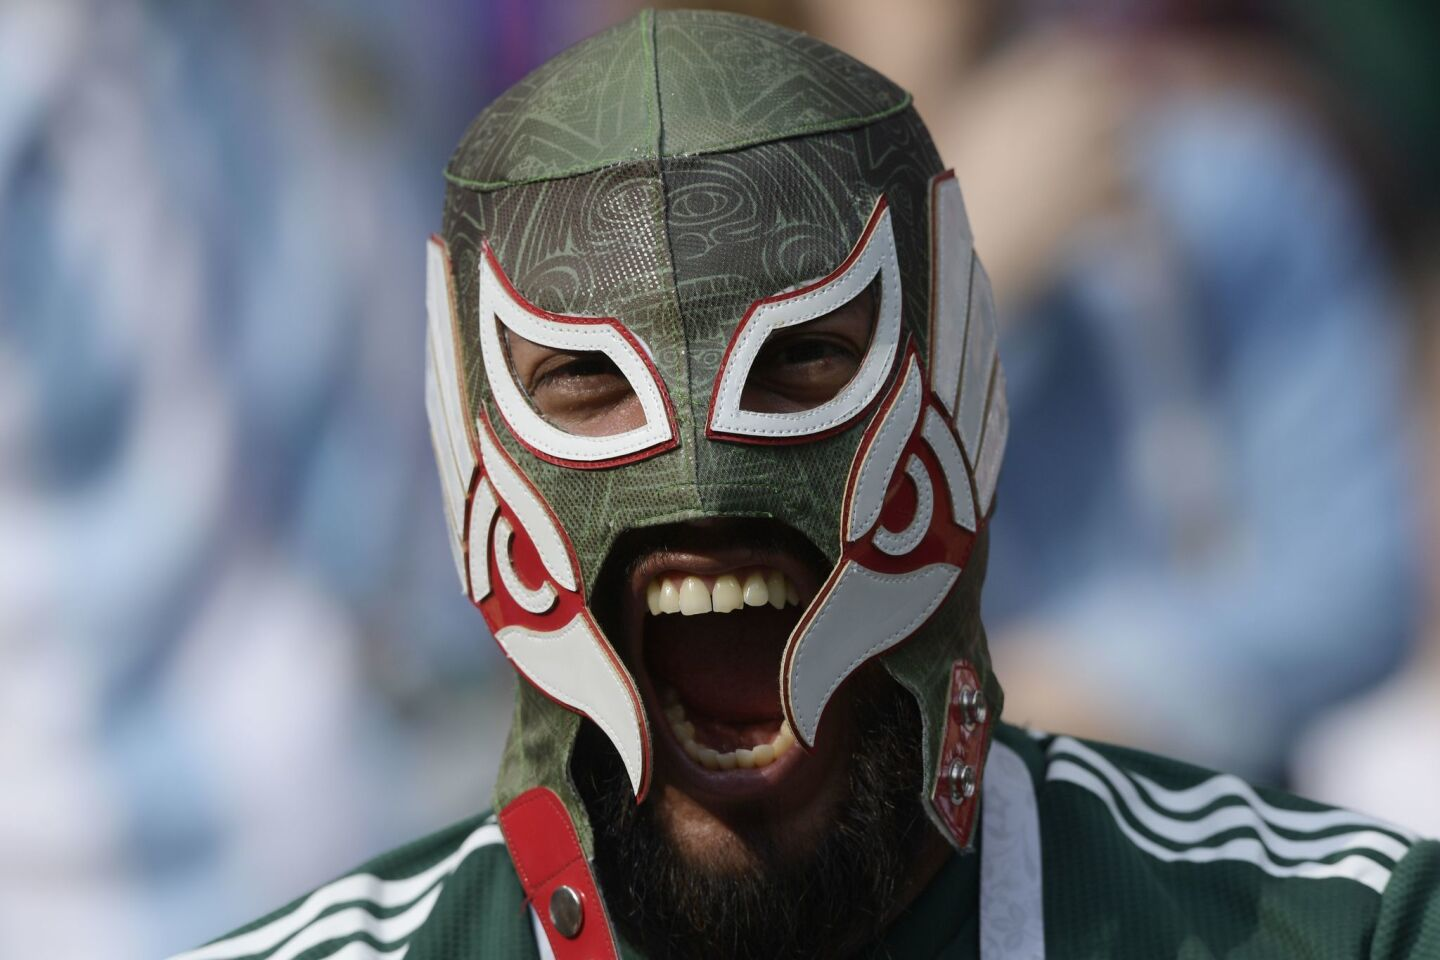 A Mexico supporter poses prior to the Russia 2018 World Cup Group F football match between Germany and Mexico at the Luzhniki Stadium in Moscow on June 17, 2018.